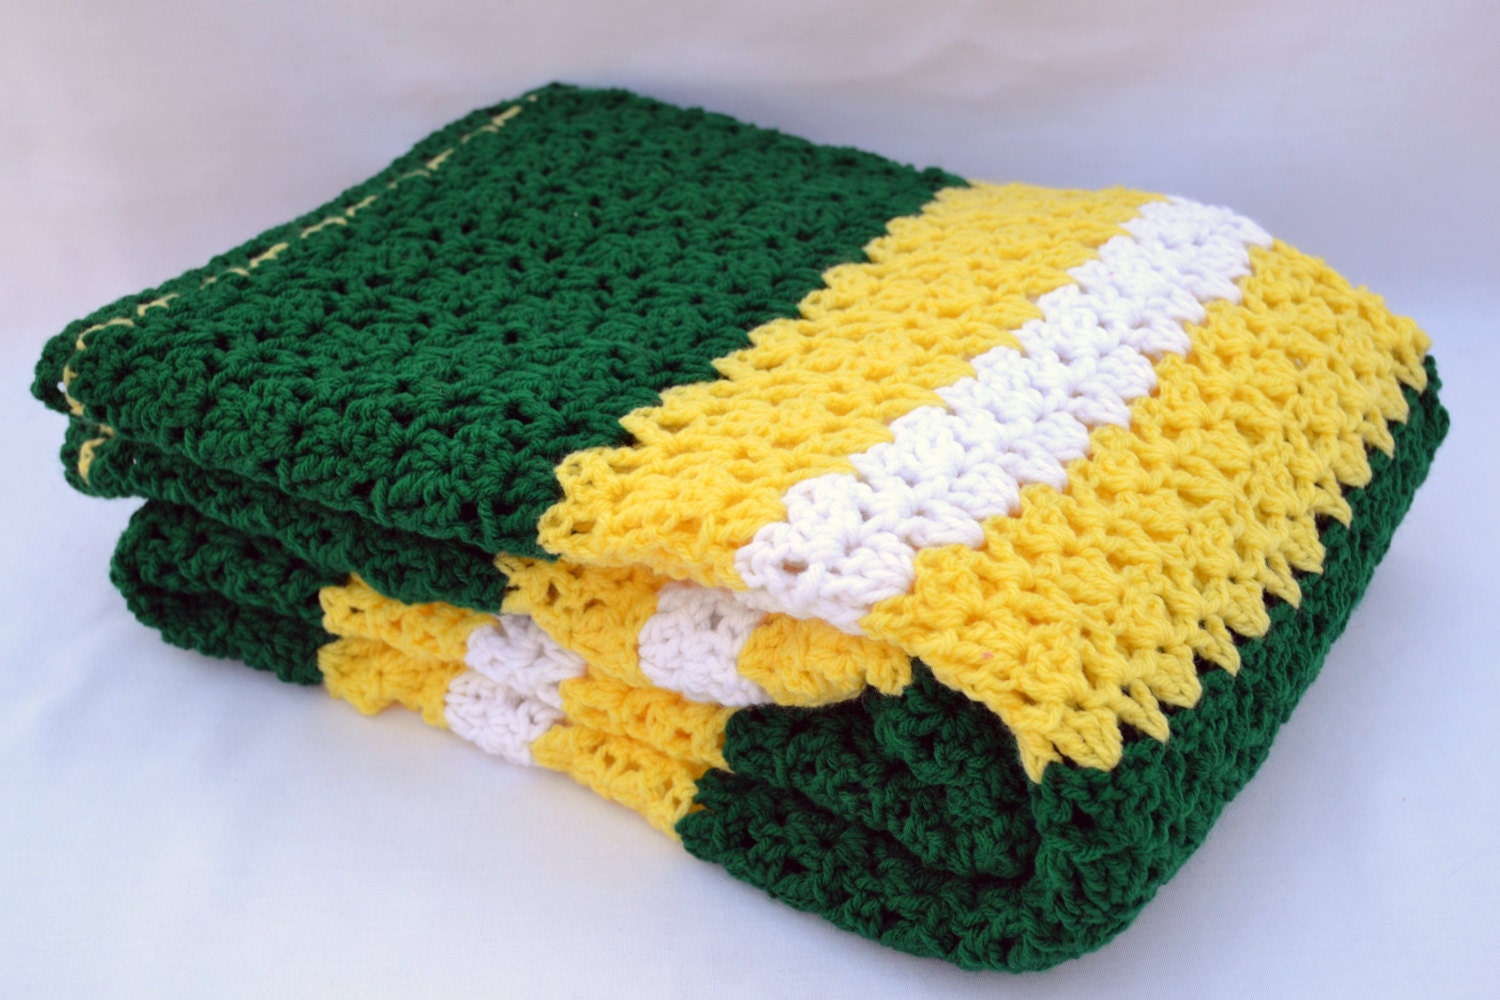 Crochet Pattern For Sports Blanket : Oregon ducks fan inspired crochet blanket afghan by ...